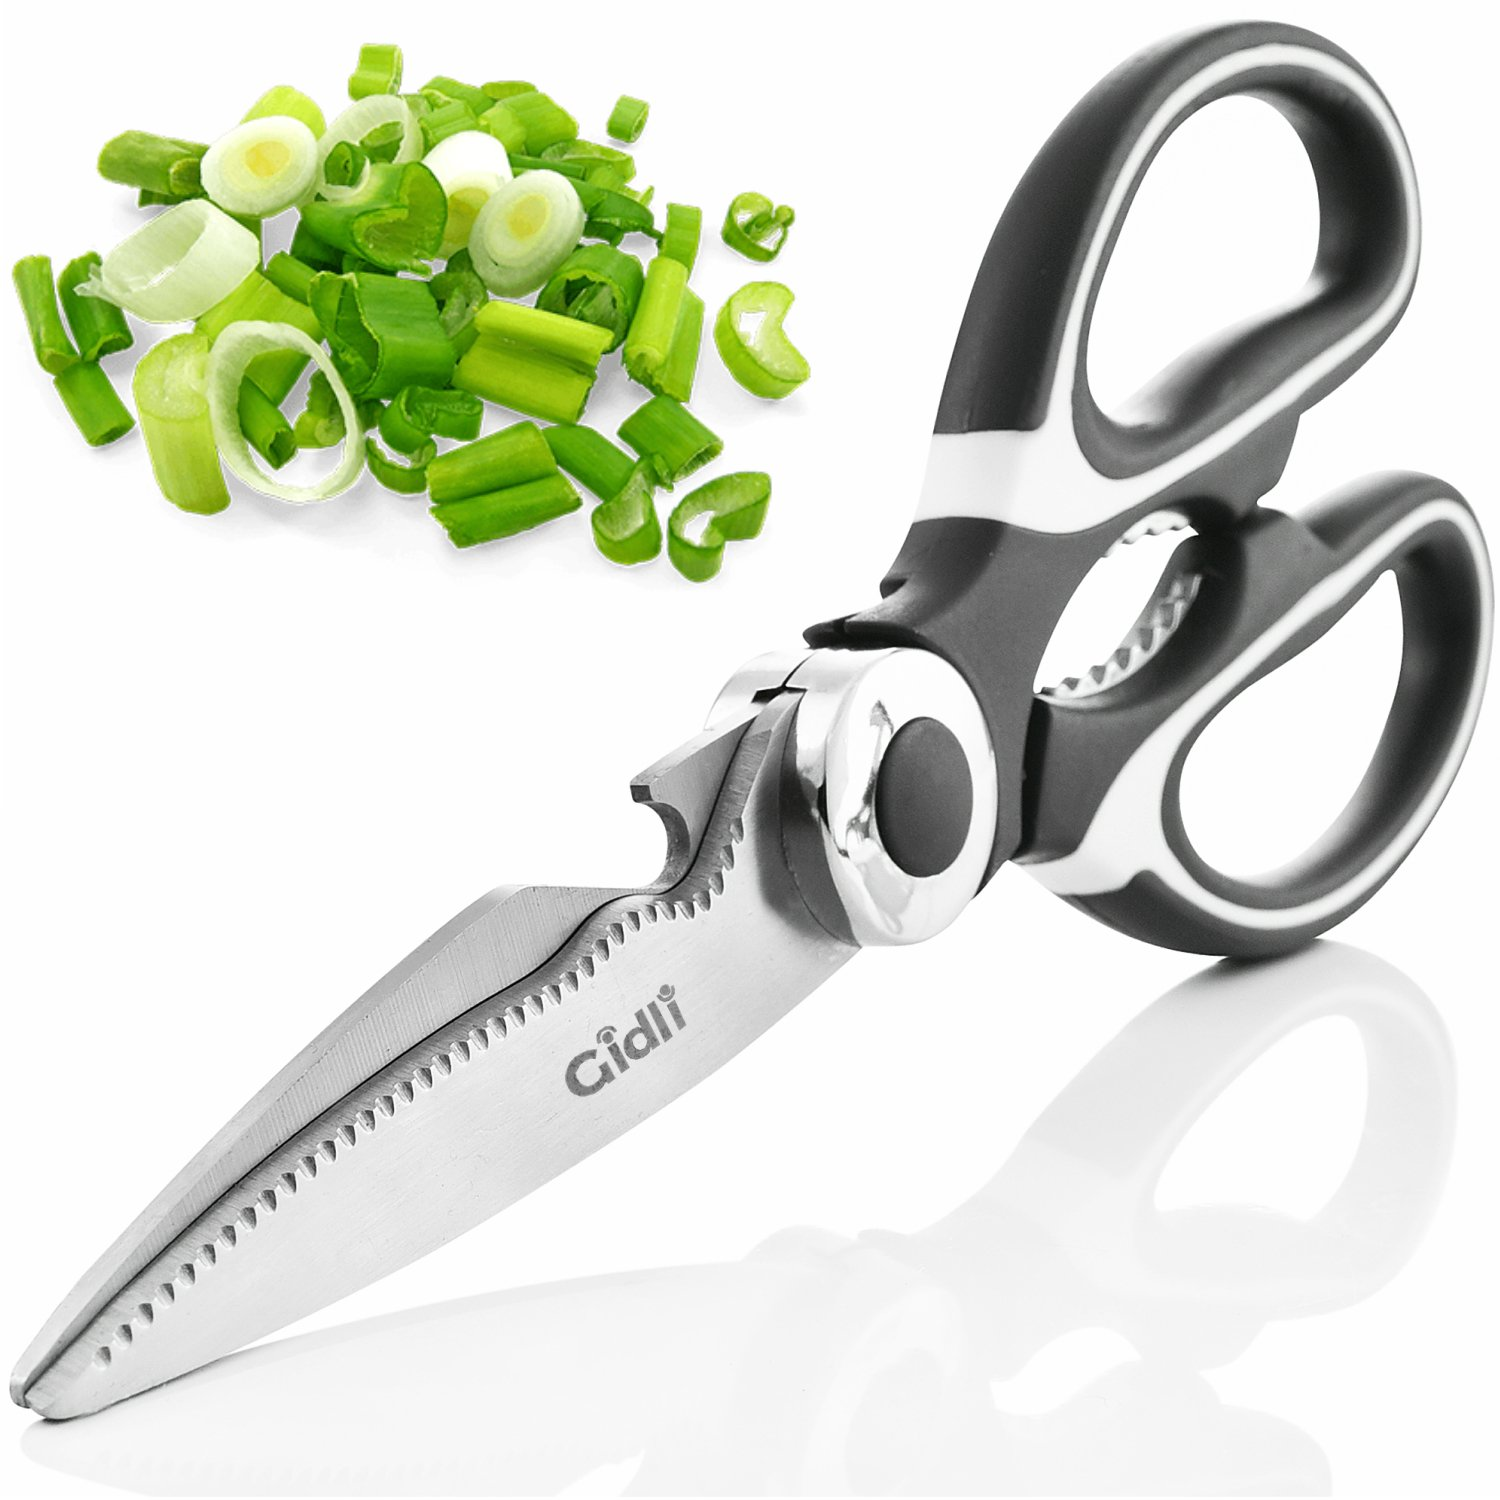 Kitchen Shears by Gidli - Lifetime Replacement Warranty- Includes Seafood Scissors As a Bonus - Heavy Duty Stainless Steel Multipurpose Ultra Sharp Utility Scissors. by Gidli (Image #2)